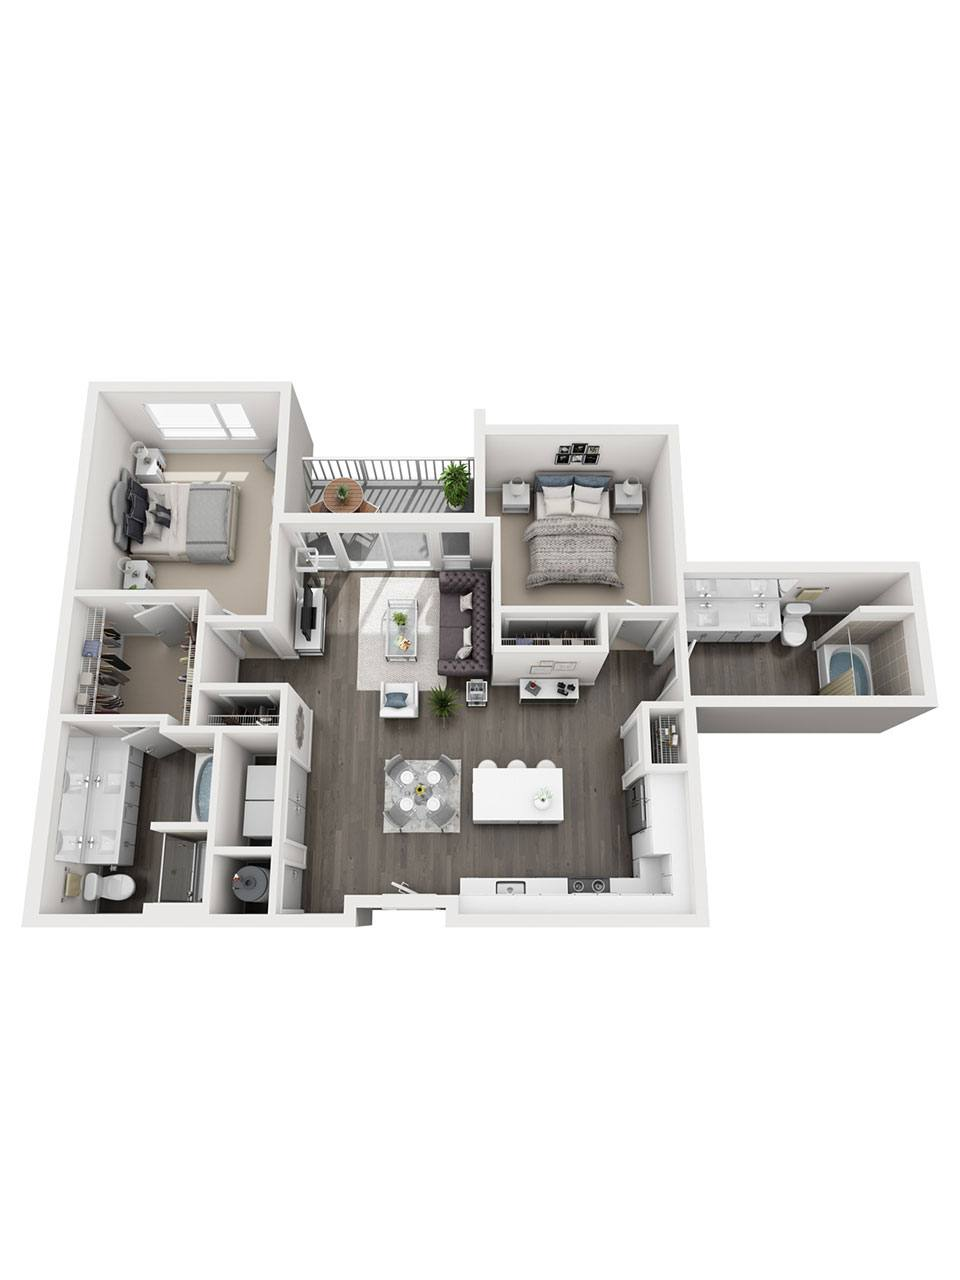 Plan 2 Bedroom – B4 | 2 Bath